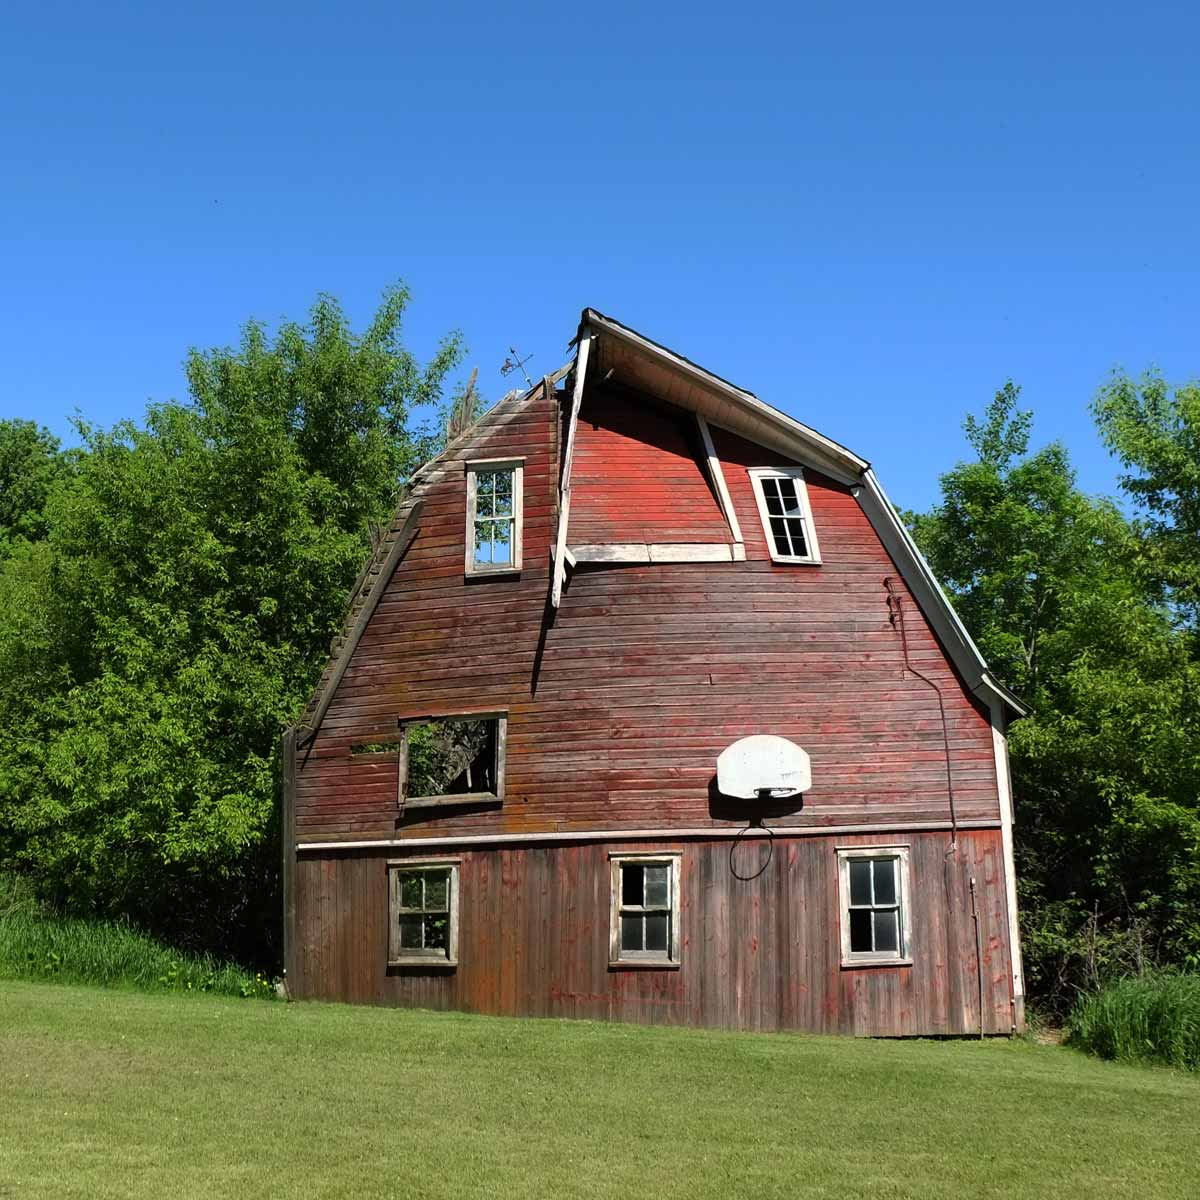 color photo barn in Stanchfield, Minnesota, where several original windows have been stashed since 1974